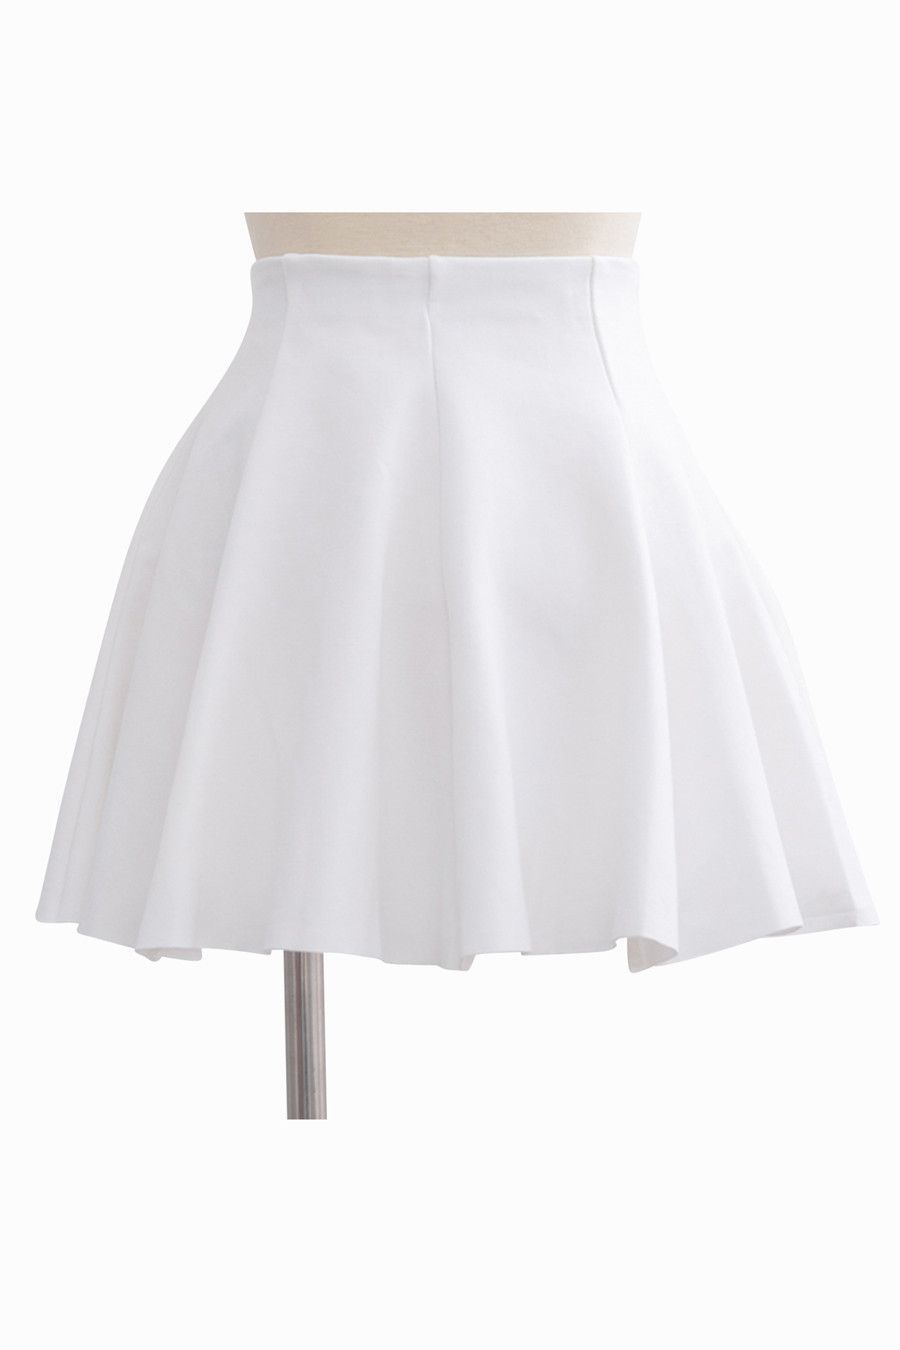 This item is shipped in 48 hours, included the weekends. This gorgeous short white skirt is the perfect fun and flirty accent for any outfit. The gentle folds give the skirt a sense of bounce and move